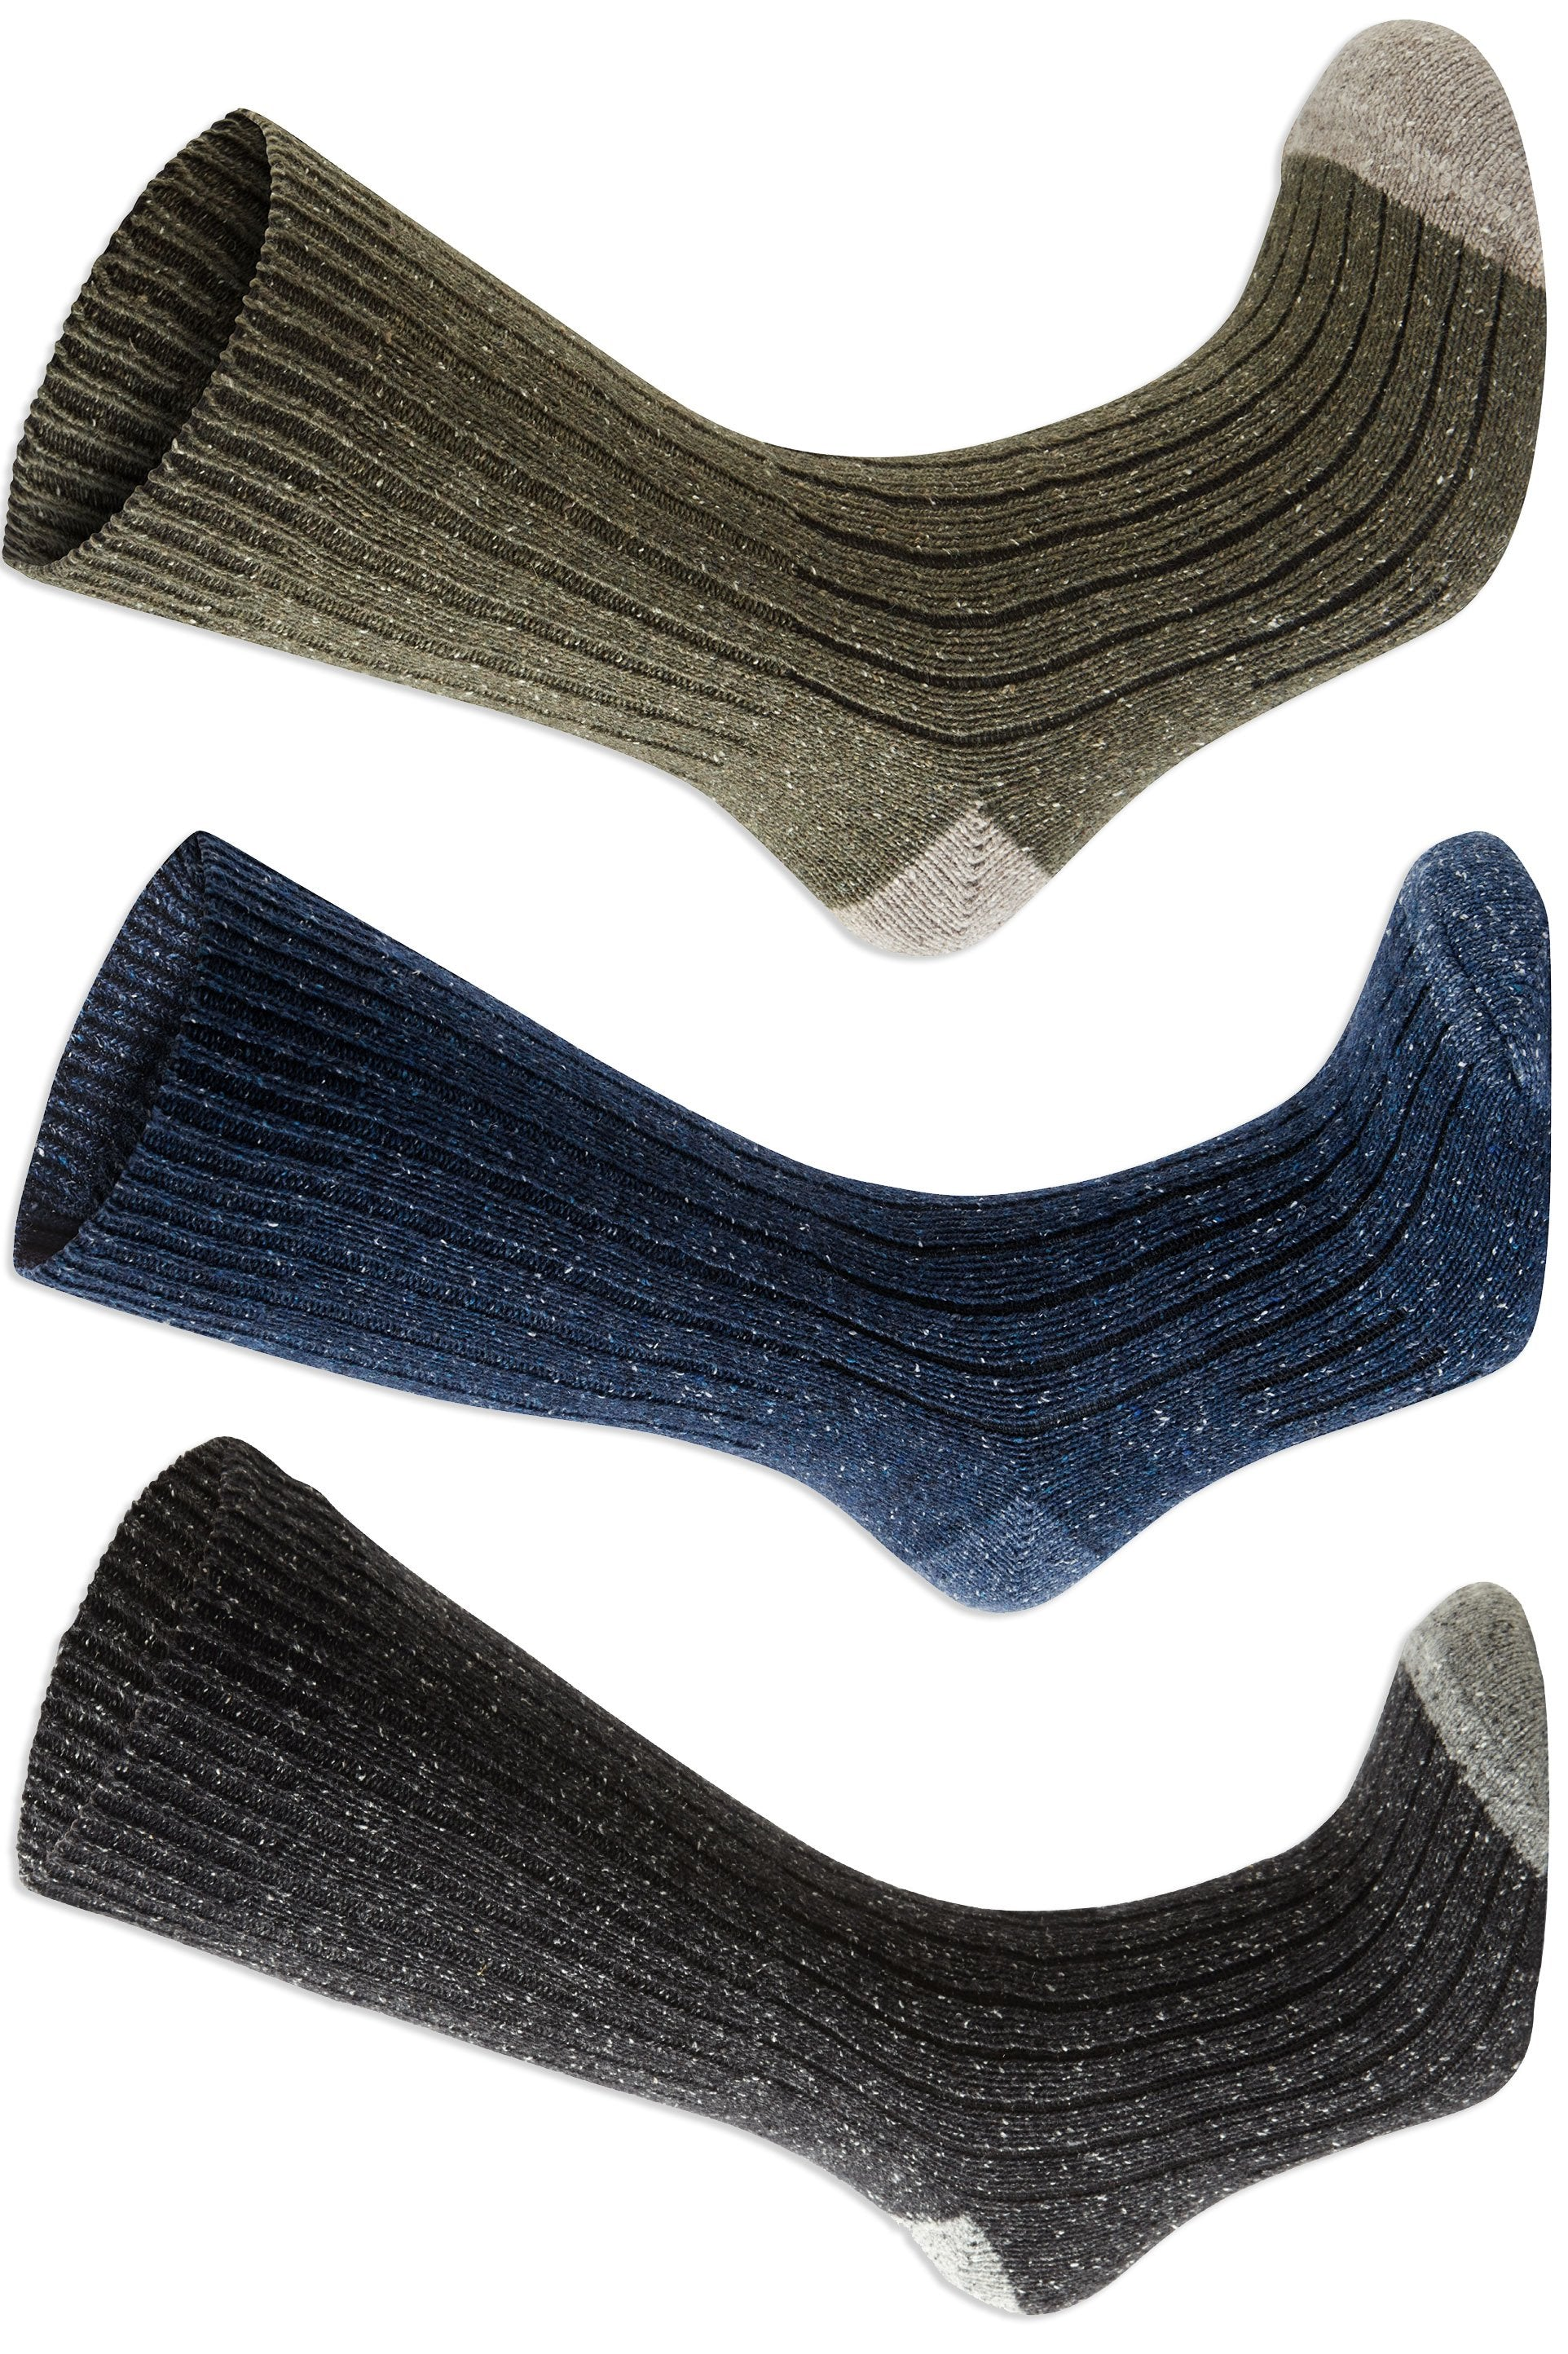 Craghoppers Glencoe Walking Socks | Moss, Blue Navy, Dark Grey